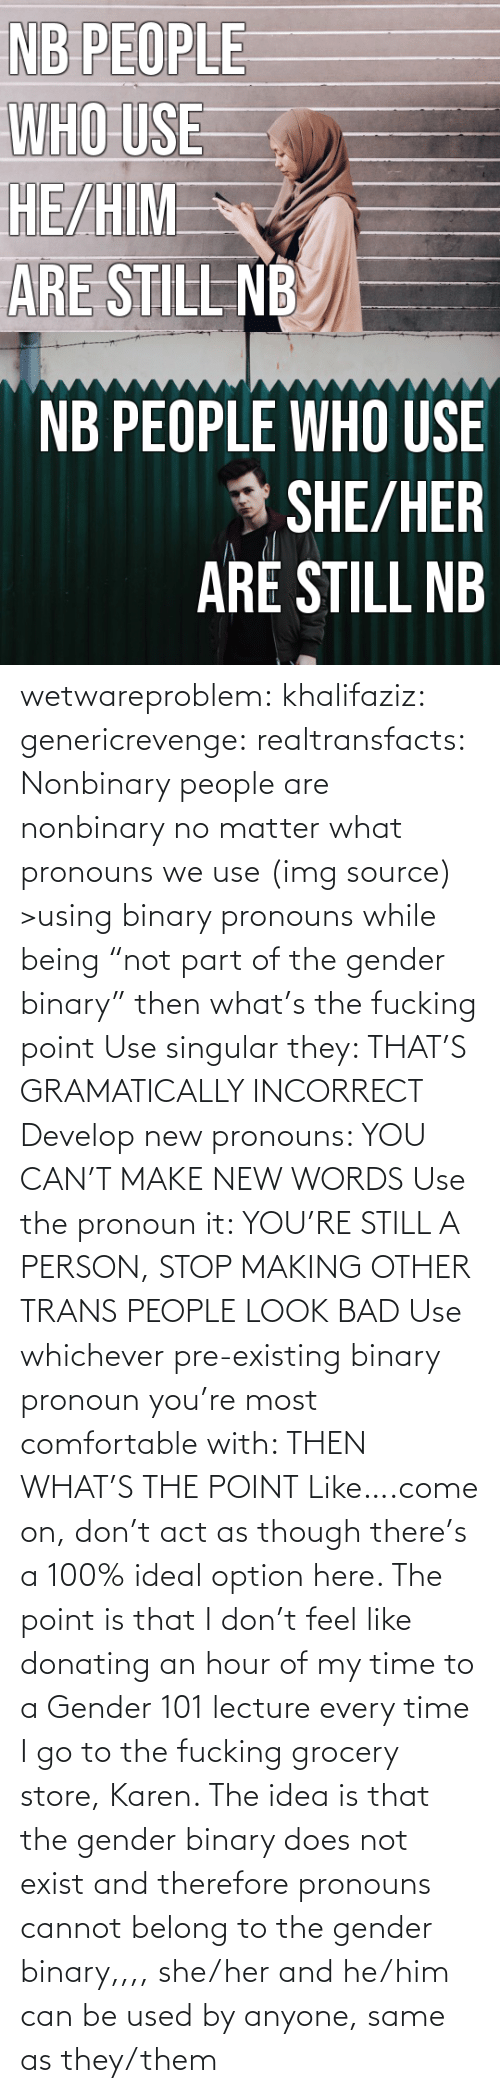 "Umblr: NB PEOPLE  WHO USE  HE/HIM  ARE STILL NB   NB PEOPLE WHO USE  * SHE/HER  ARÉ STILL NB wetwareproblem: khalifaziz:   genericrevenge:   realtransfacts: Nonbinary people are nonbinary no matter what pronouns we use (img source)   >using binary pronouns while being ""not part of the gender binary"" then what's the fucking point   Use singular they: THAT'S GRAMATICALLY INCORRECT Develop new pronouns: YOU CAN'T MAKE NEW WORDS Use the pronoun it: YOU'RE STILL A PERSON, STOP MAKING OTHER TRANS PEOPLE LOOK BAD Use whichever pre-existing binary pronoun you're most comfortable with: THEN WHAT'S THE POINT Like….come on, don't act as though there's a 100% ideal option here.    The point is that I don't feel like donating an hour of my time to a Gender 101 lecture every time I go to the fucking grocery store, Karen.     The idea is that the gender binary does not exist and therefore pronouns cannot belong to the gender binary,,,, she/her and he/him can be used by anyone, same as they/them"